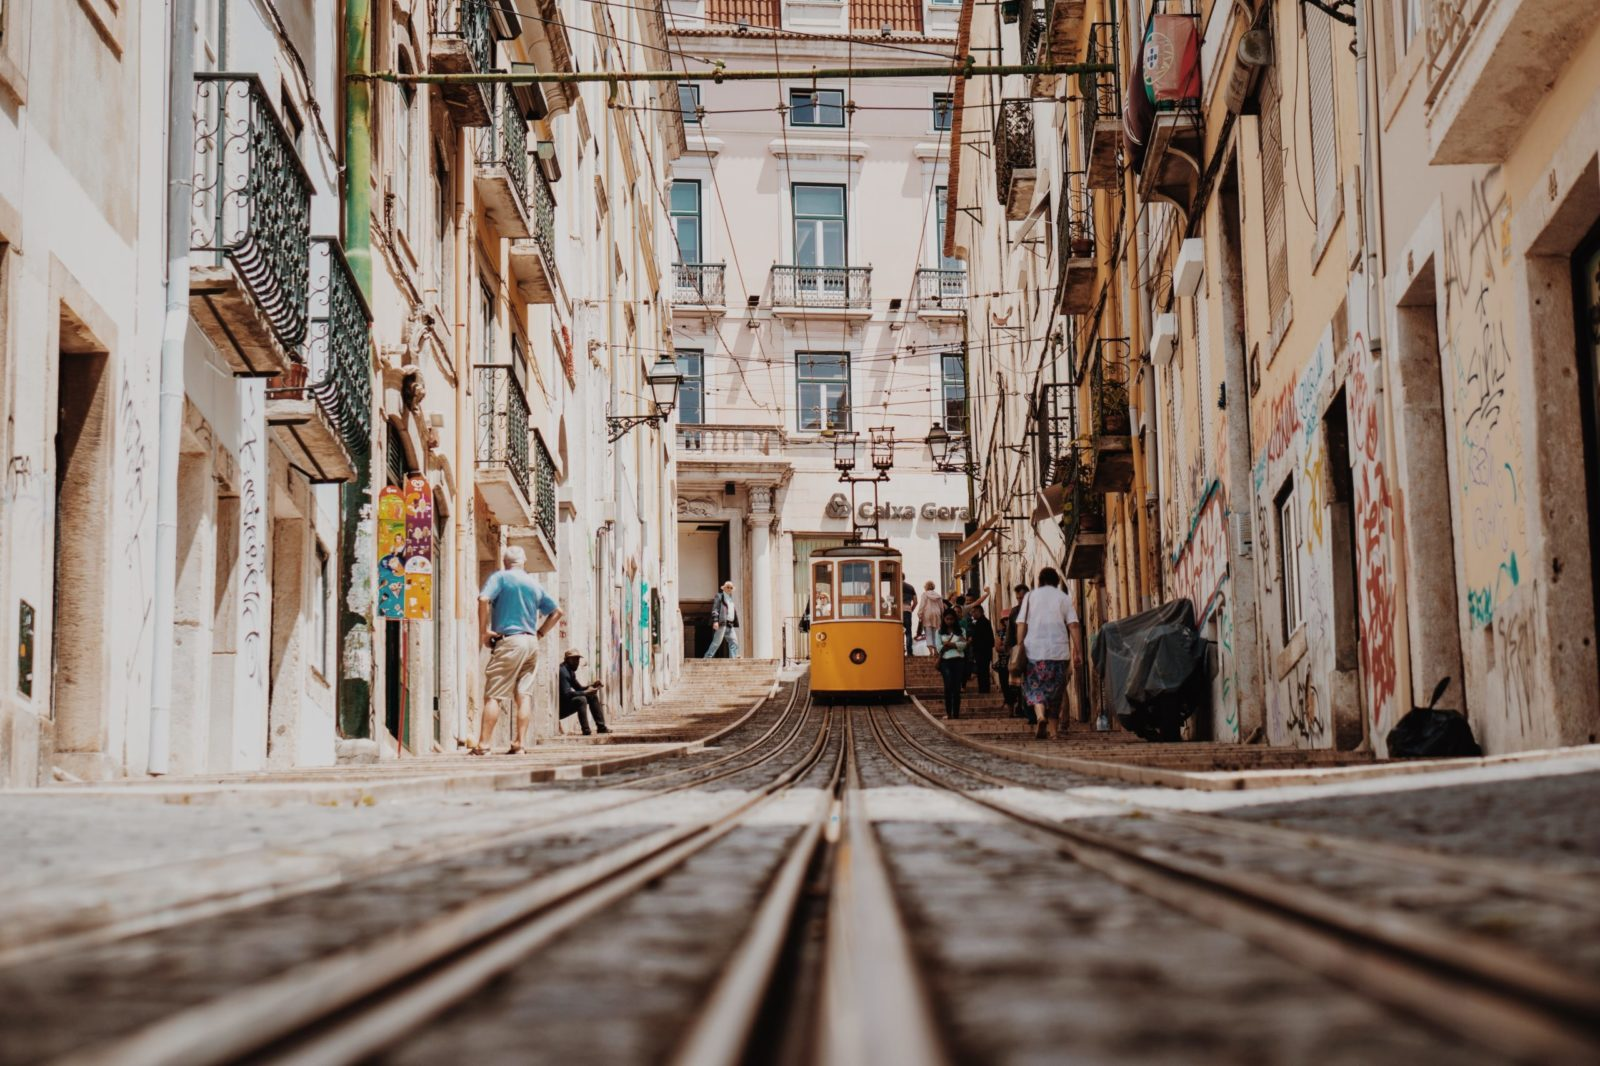 In Lisbon, ISTO addresses social tourism and heritage sustainability